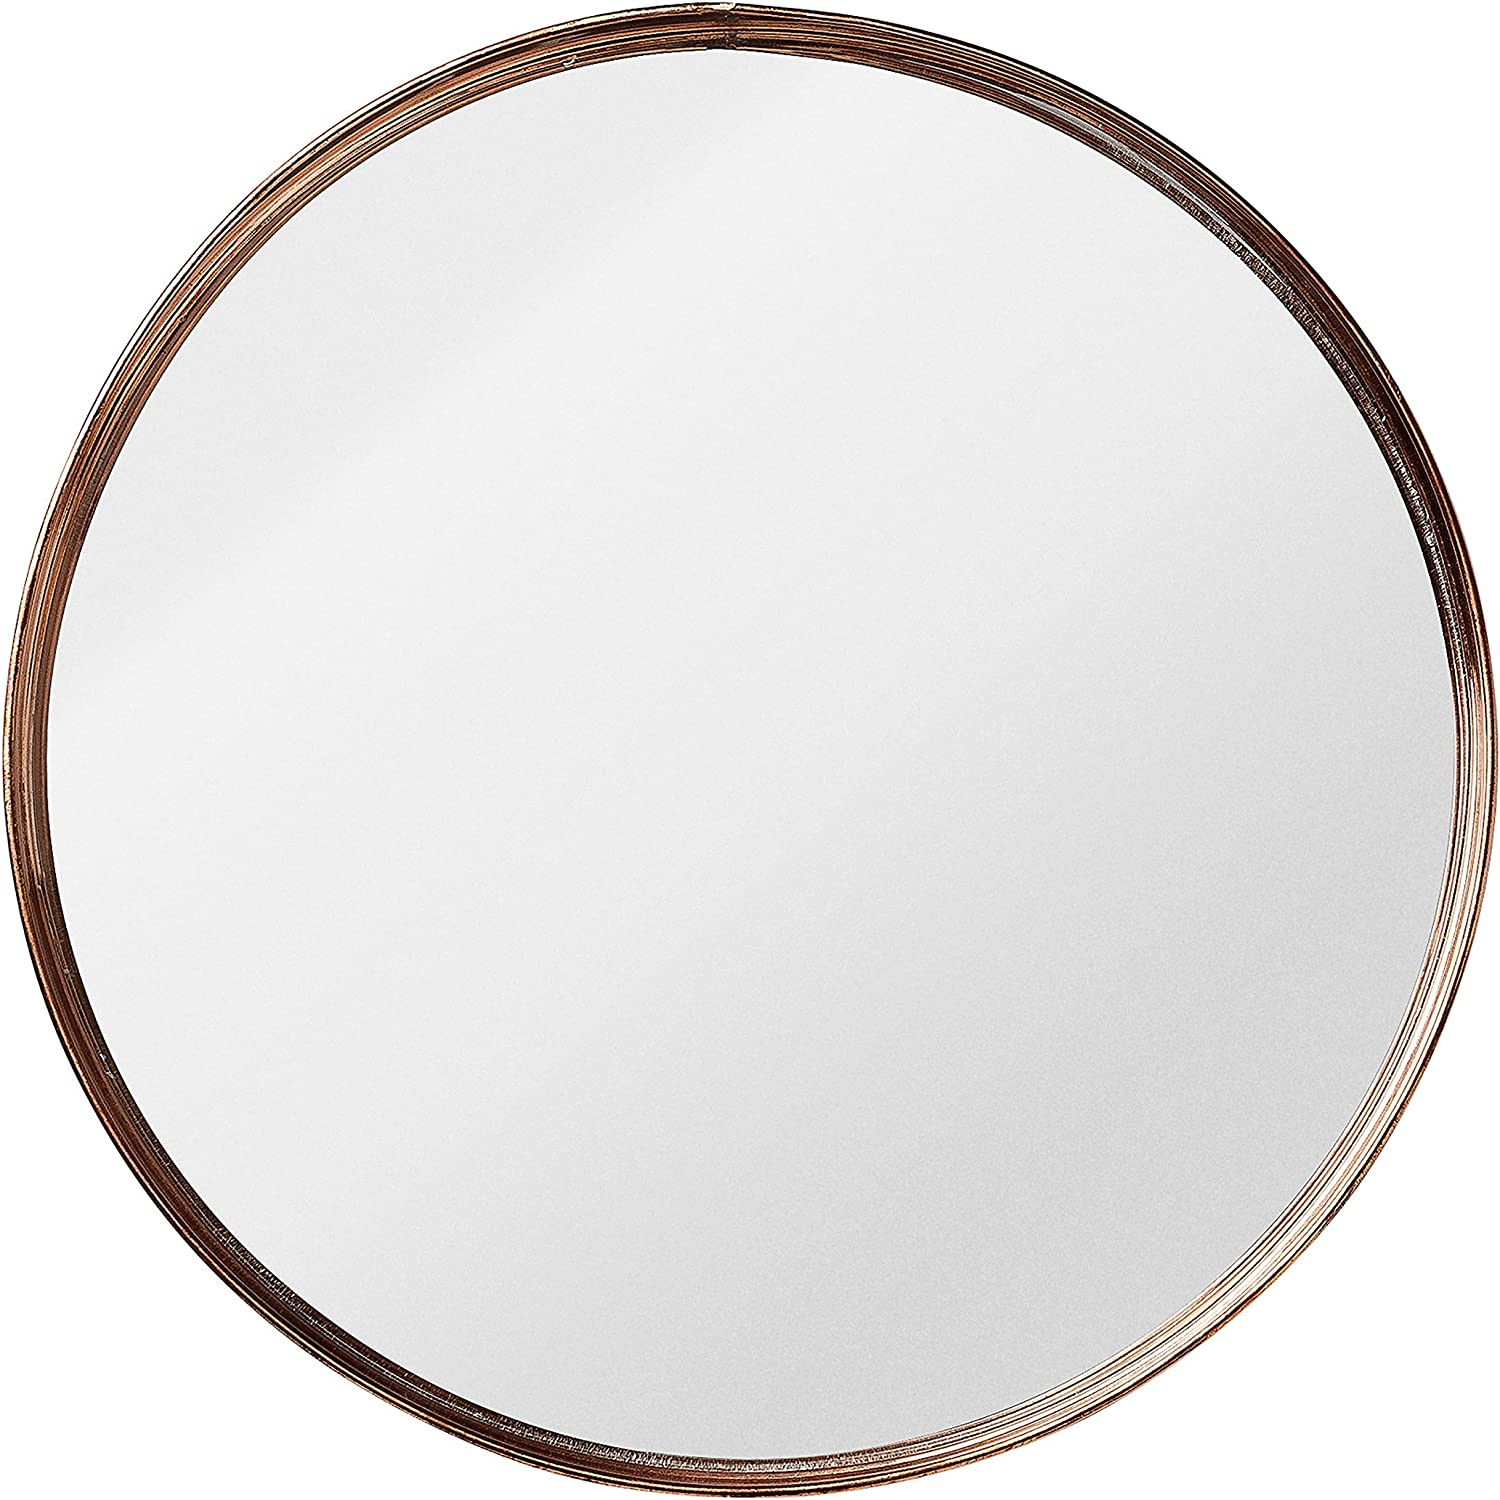 Bloomingville Small Round Metal Framed Mirror with Copper Finish